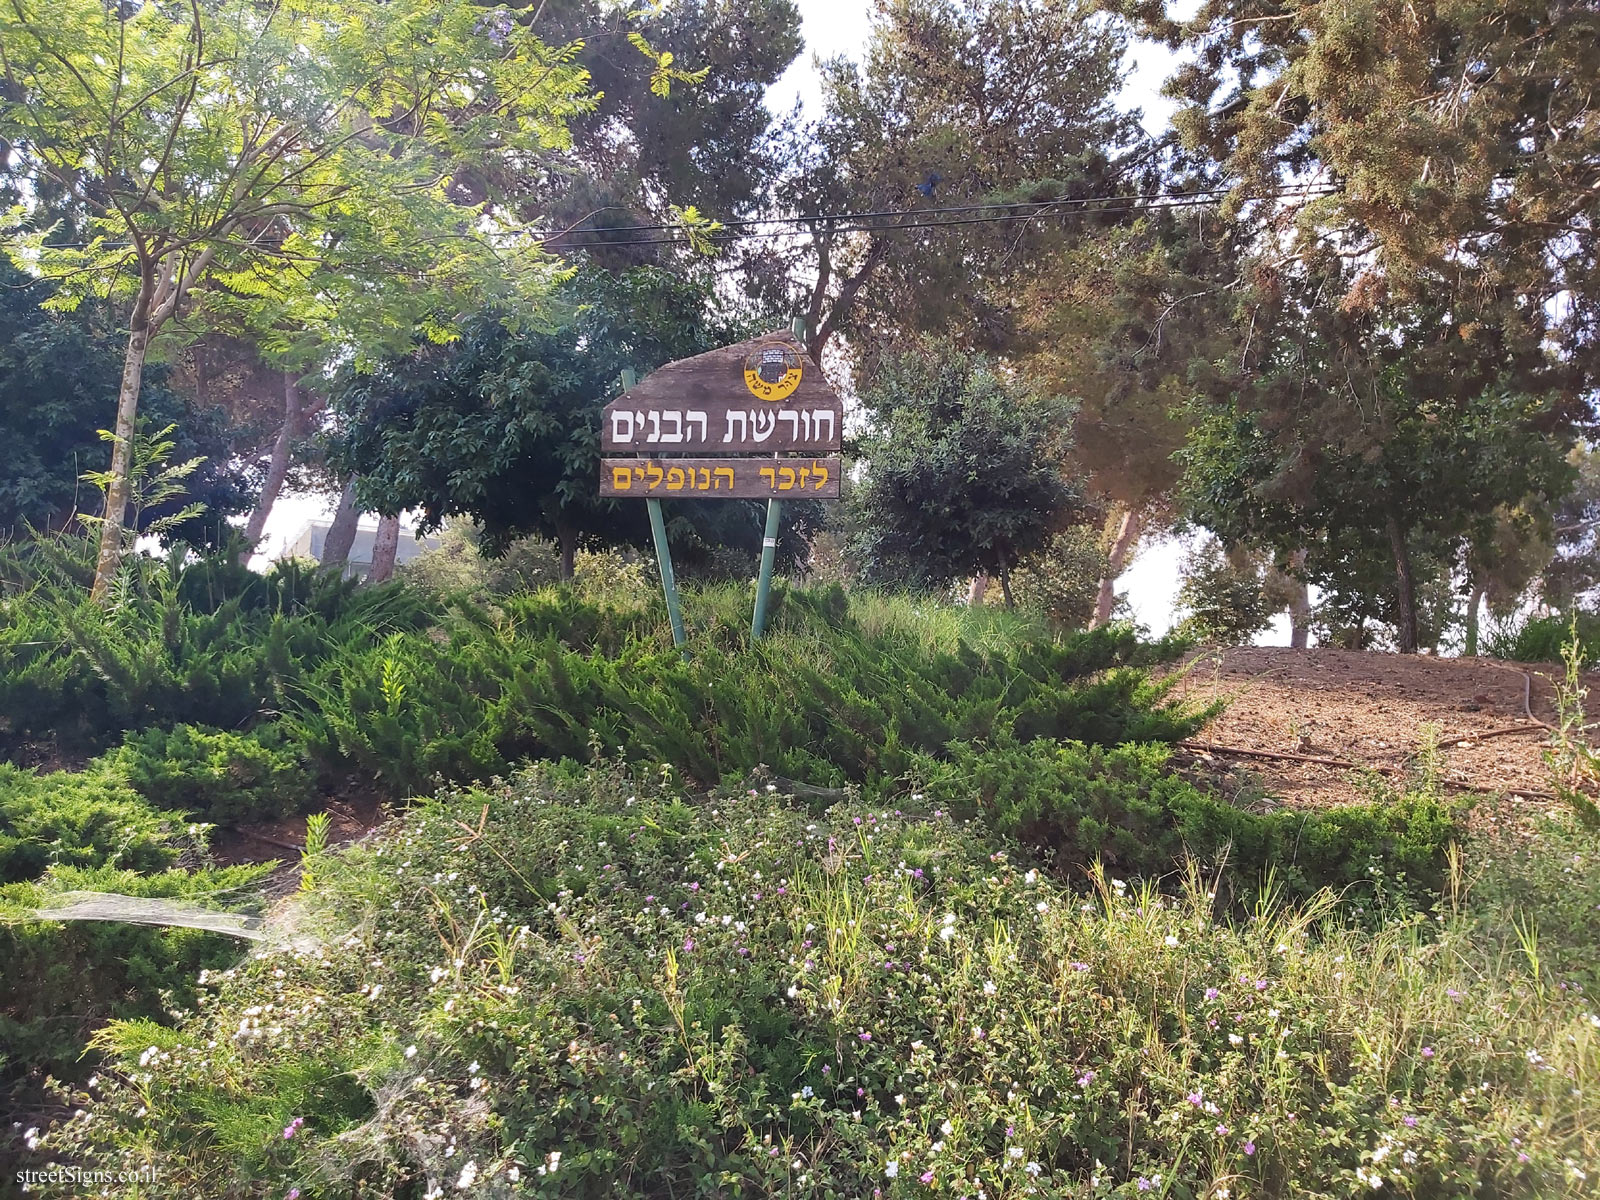 Tzur Moshe - The sons' grove